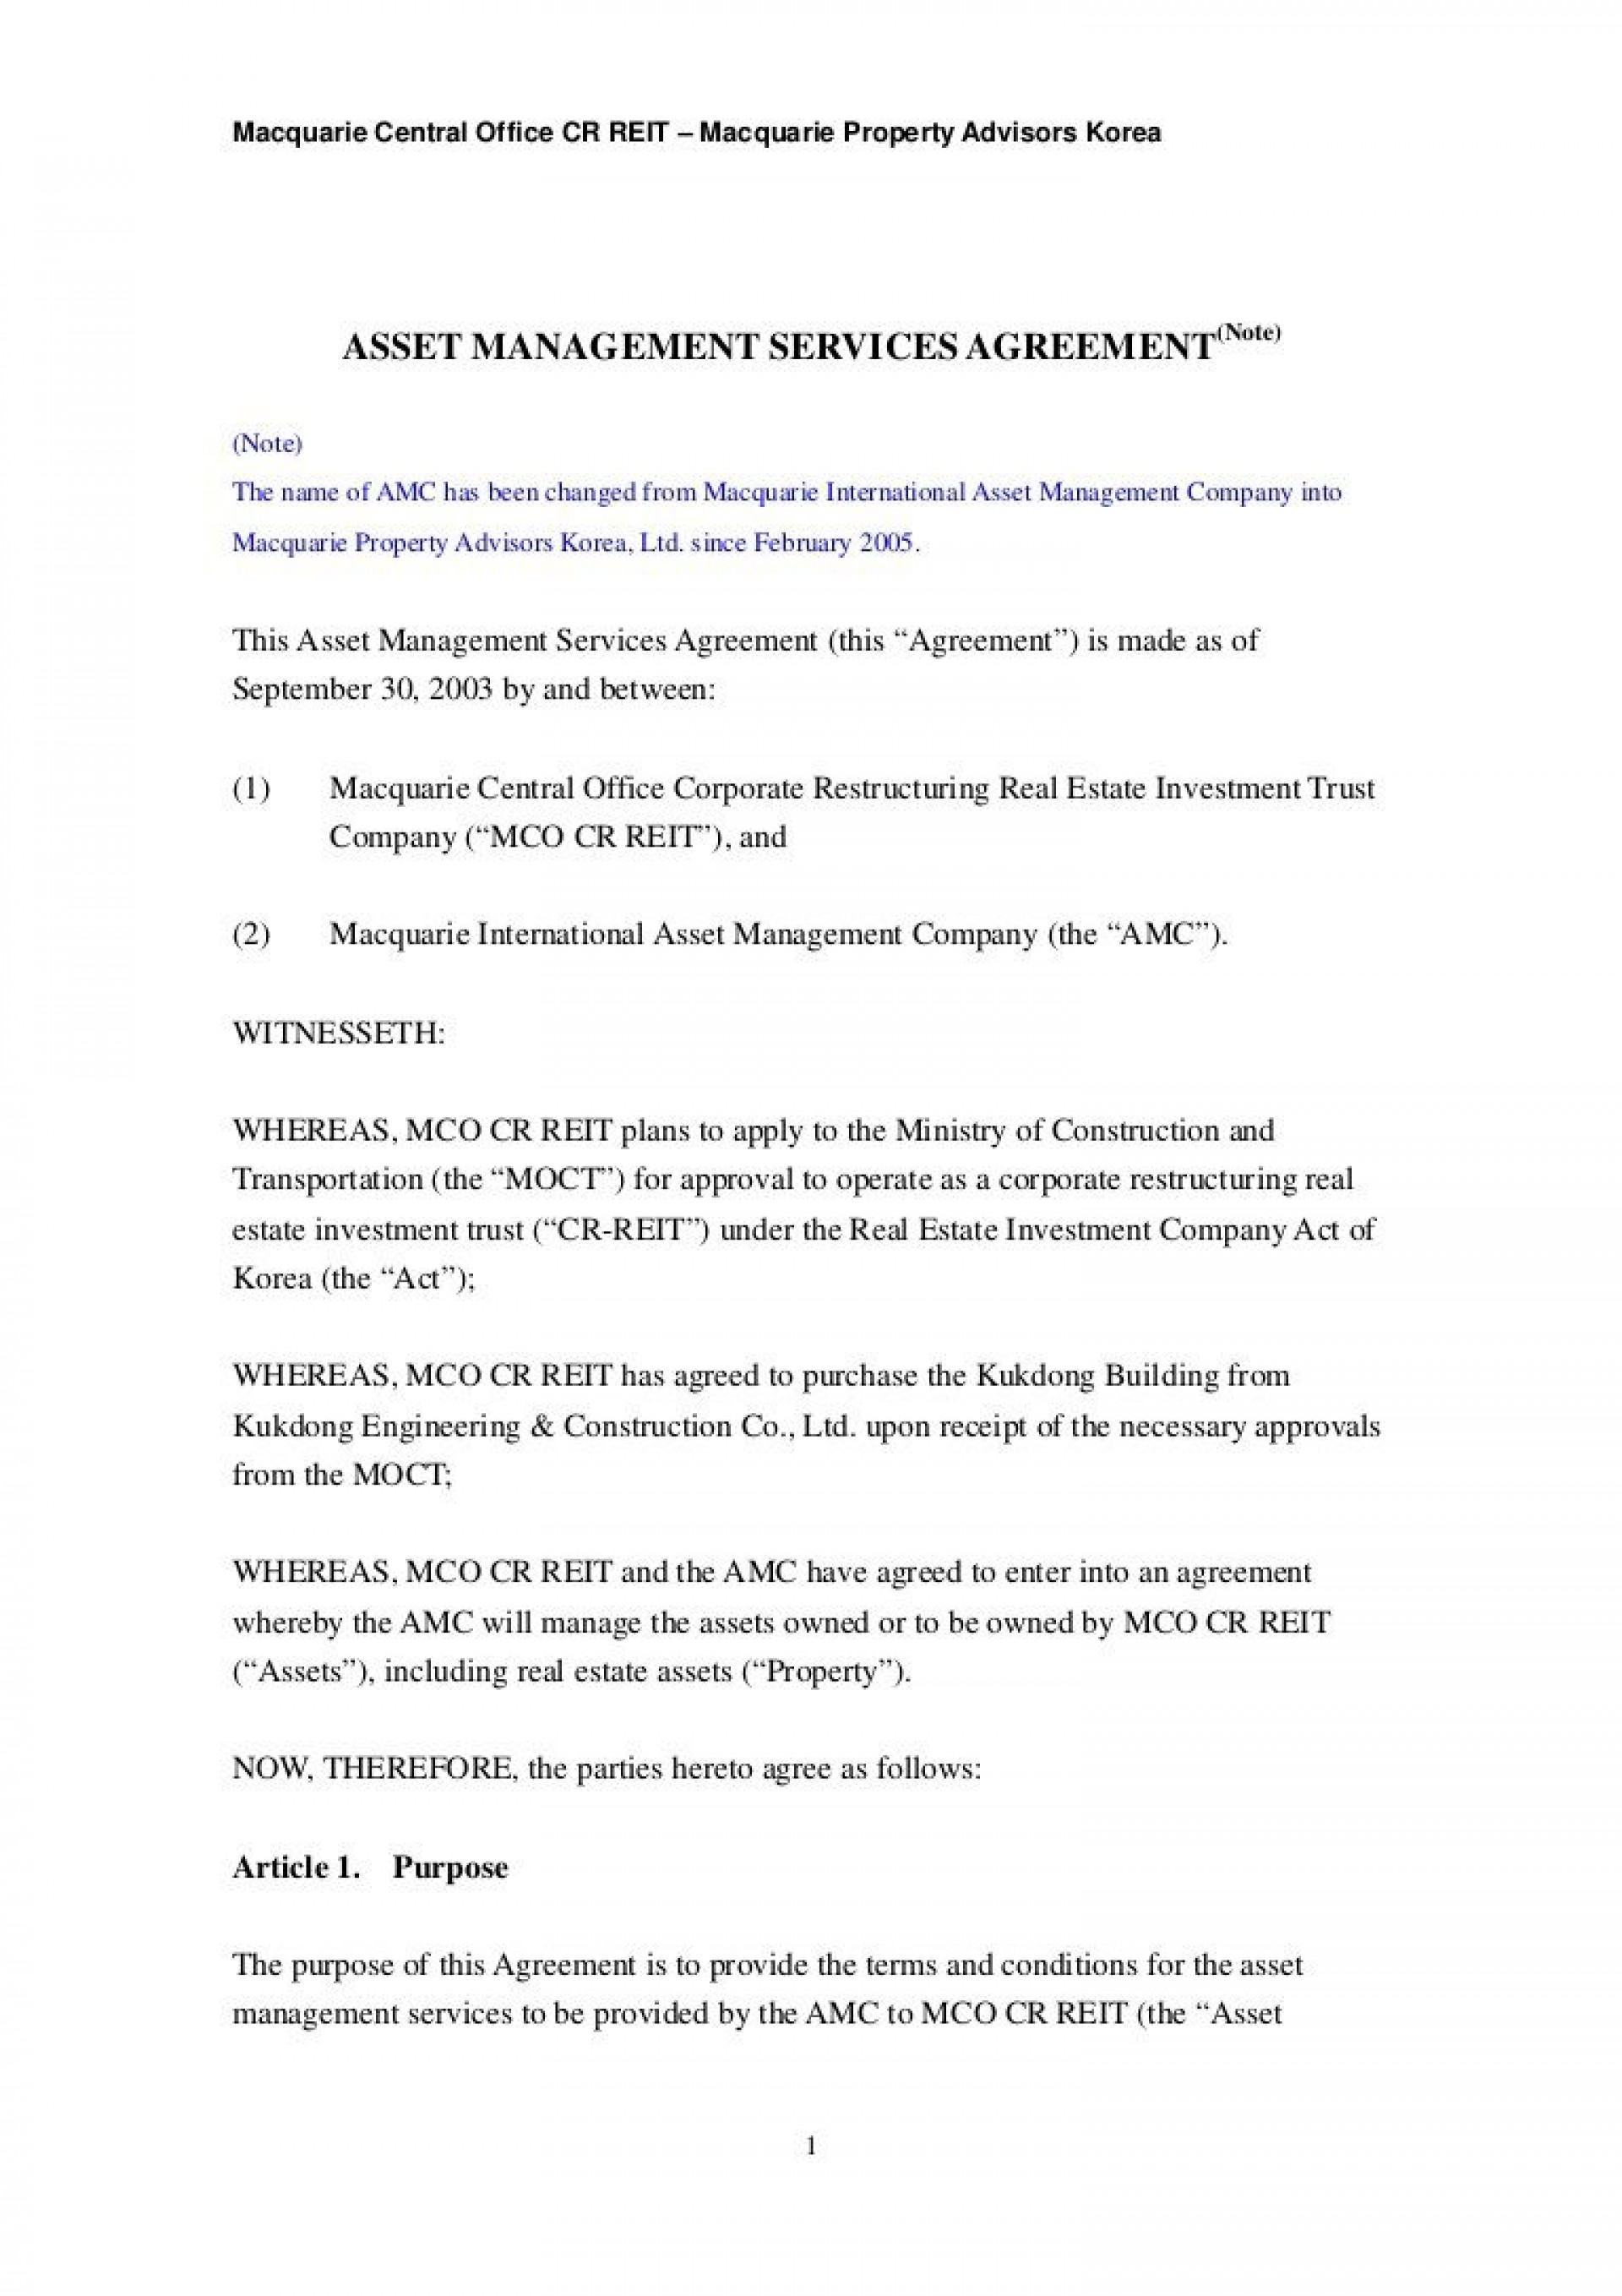 002 Archaicawful Property Management Contract Sample Highest Clarity  Philippine Agreement Template Pdf Commercial1920